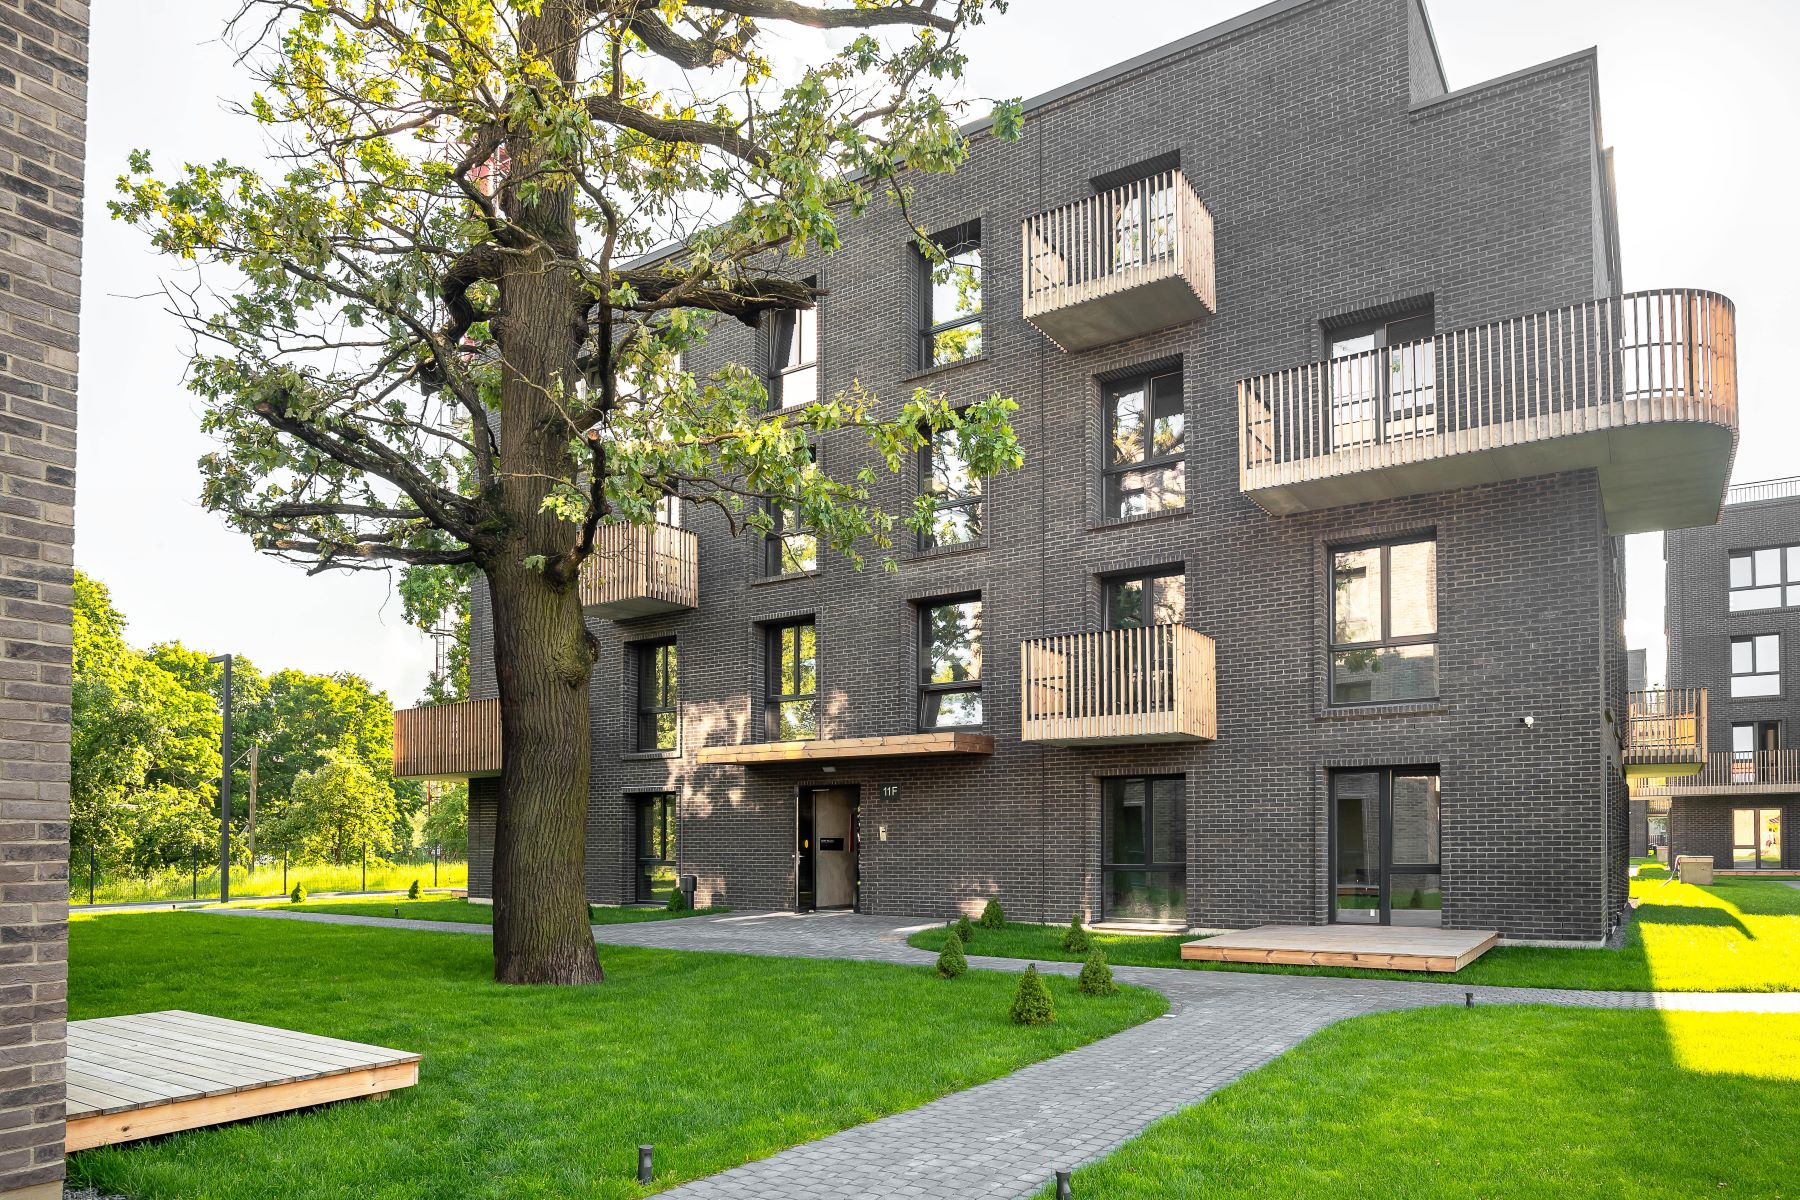 Apartments for Sale at Three-Bedroom Apartment with Terrace of the Roof Kaunas, Kaunas County Lithuania